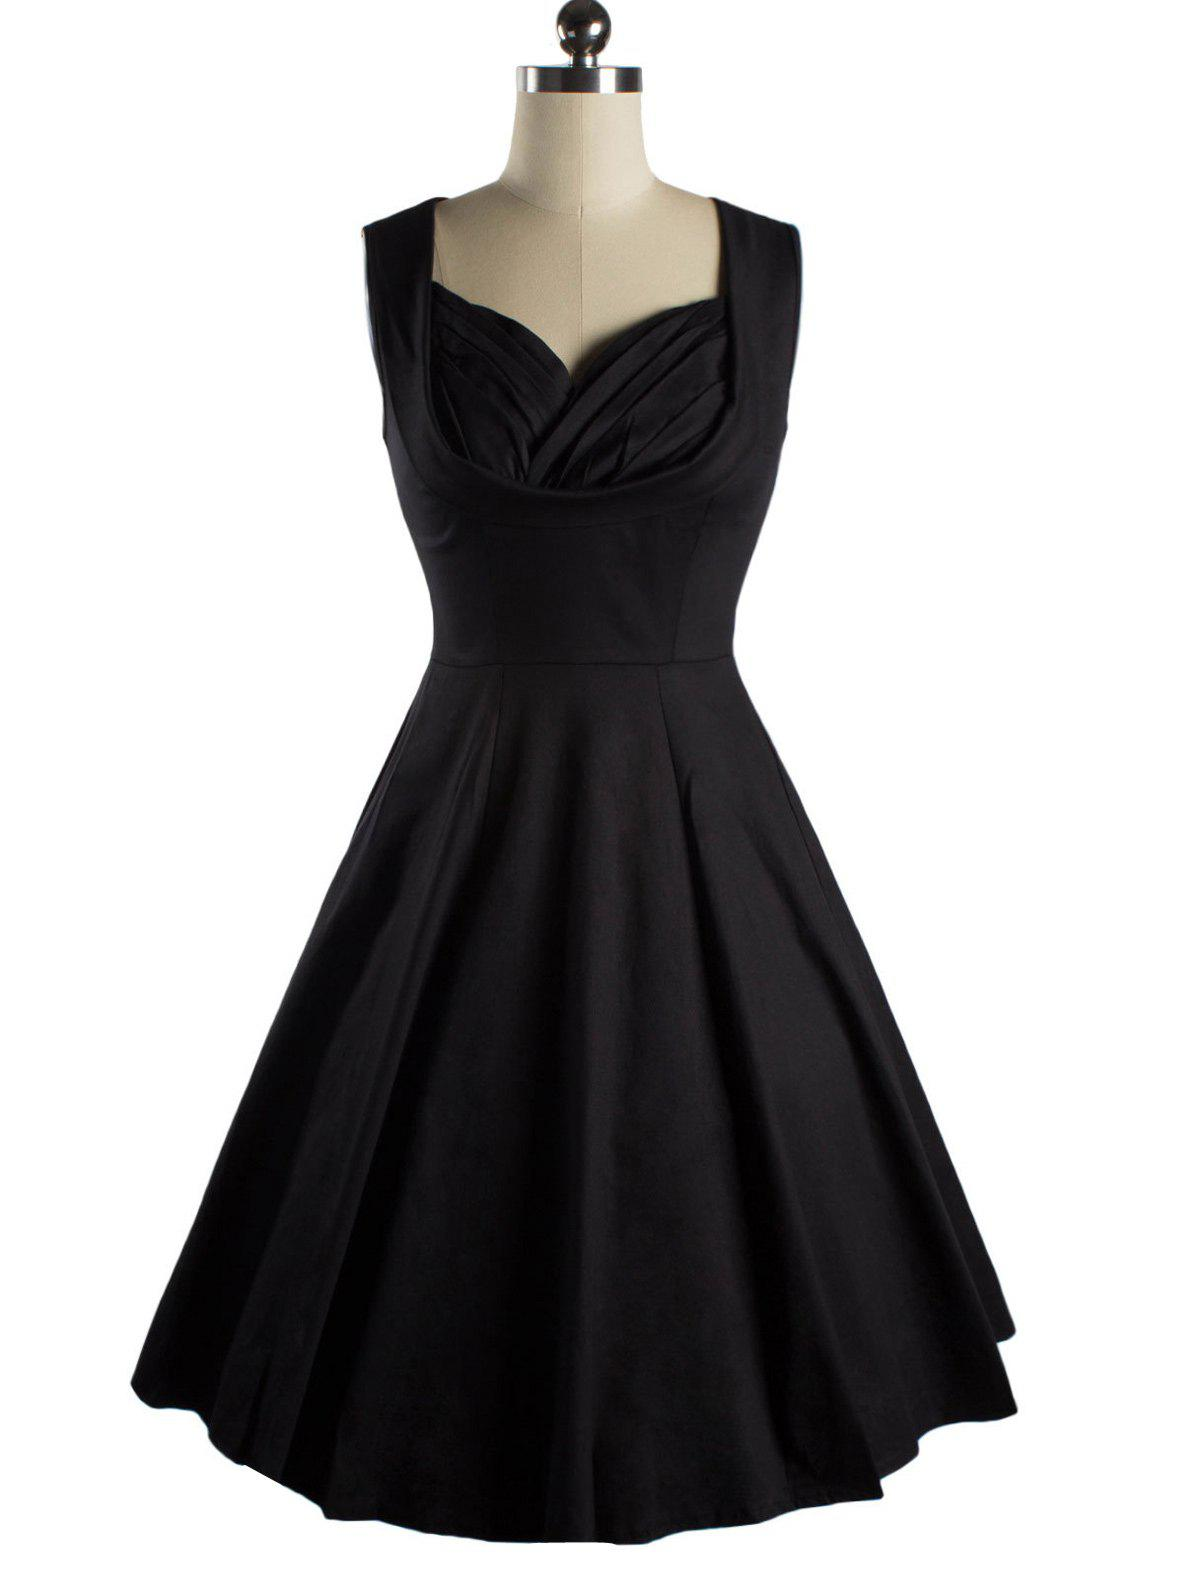 Sleeveless Sweetheart Neck Swing Dress - BLACK 2XL